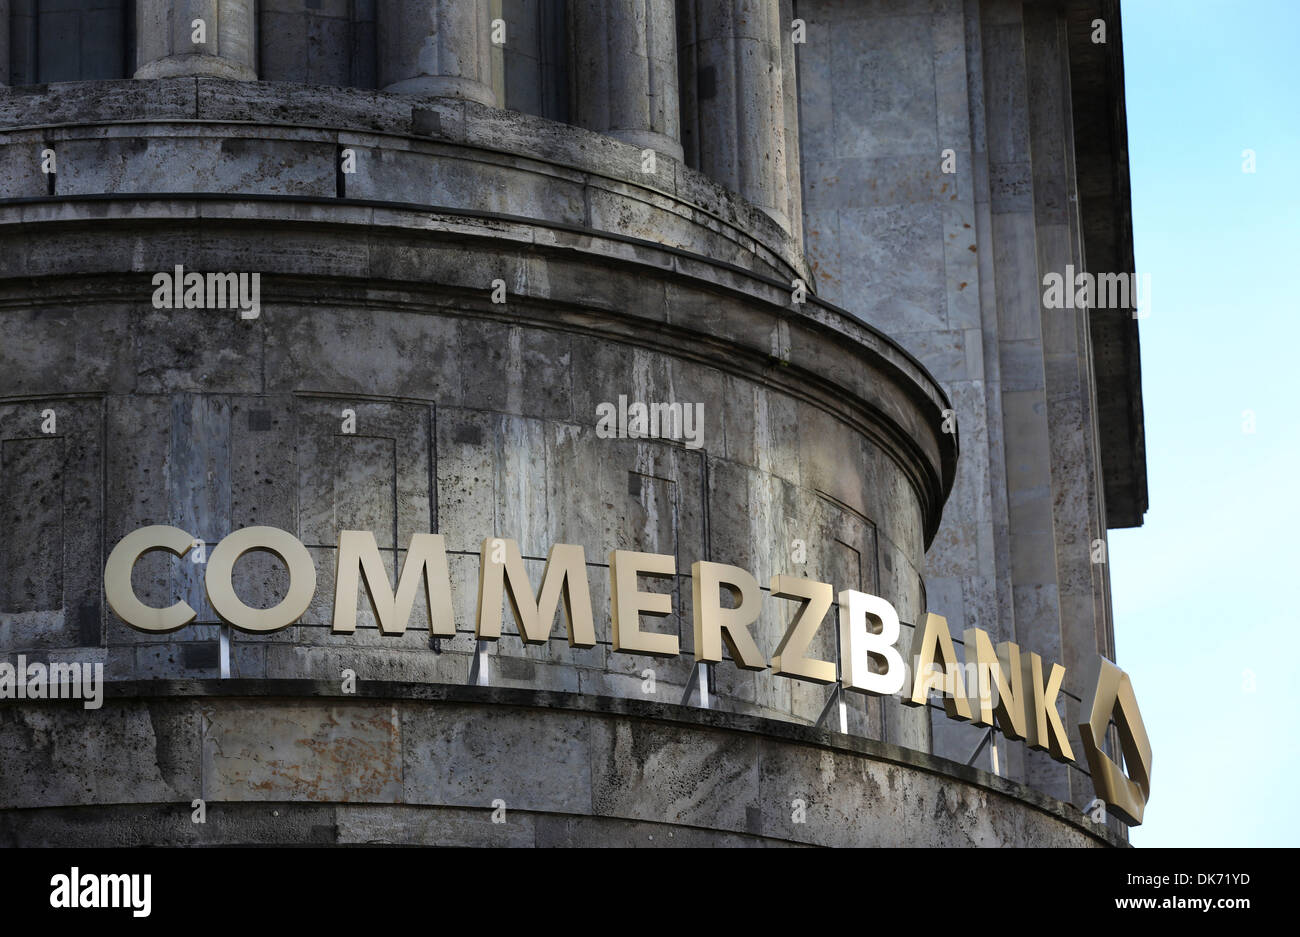 Duesseldorf, Germany. 03rd Dec, 2013. The lettering of global banking and financial services company Commerzbank AG is pictured on a branch of the bank in Duesseldorf, Germany, 03 December 2013. Investigators searched premises of the bank on 03 December 2013 because of suspicions of assistance with tax evasion. Photo: MARTIN GERTEN/dpa/Alamy Live News - Stock Image